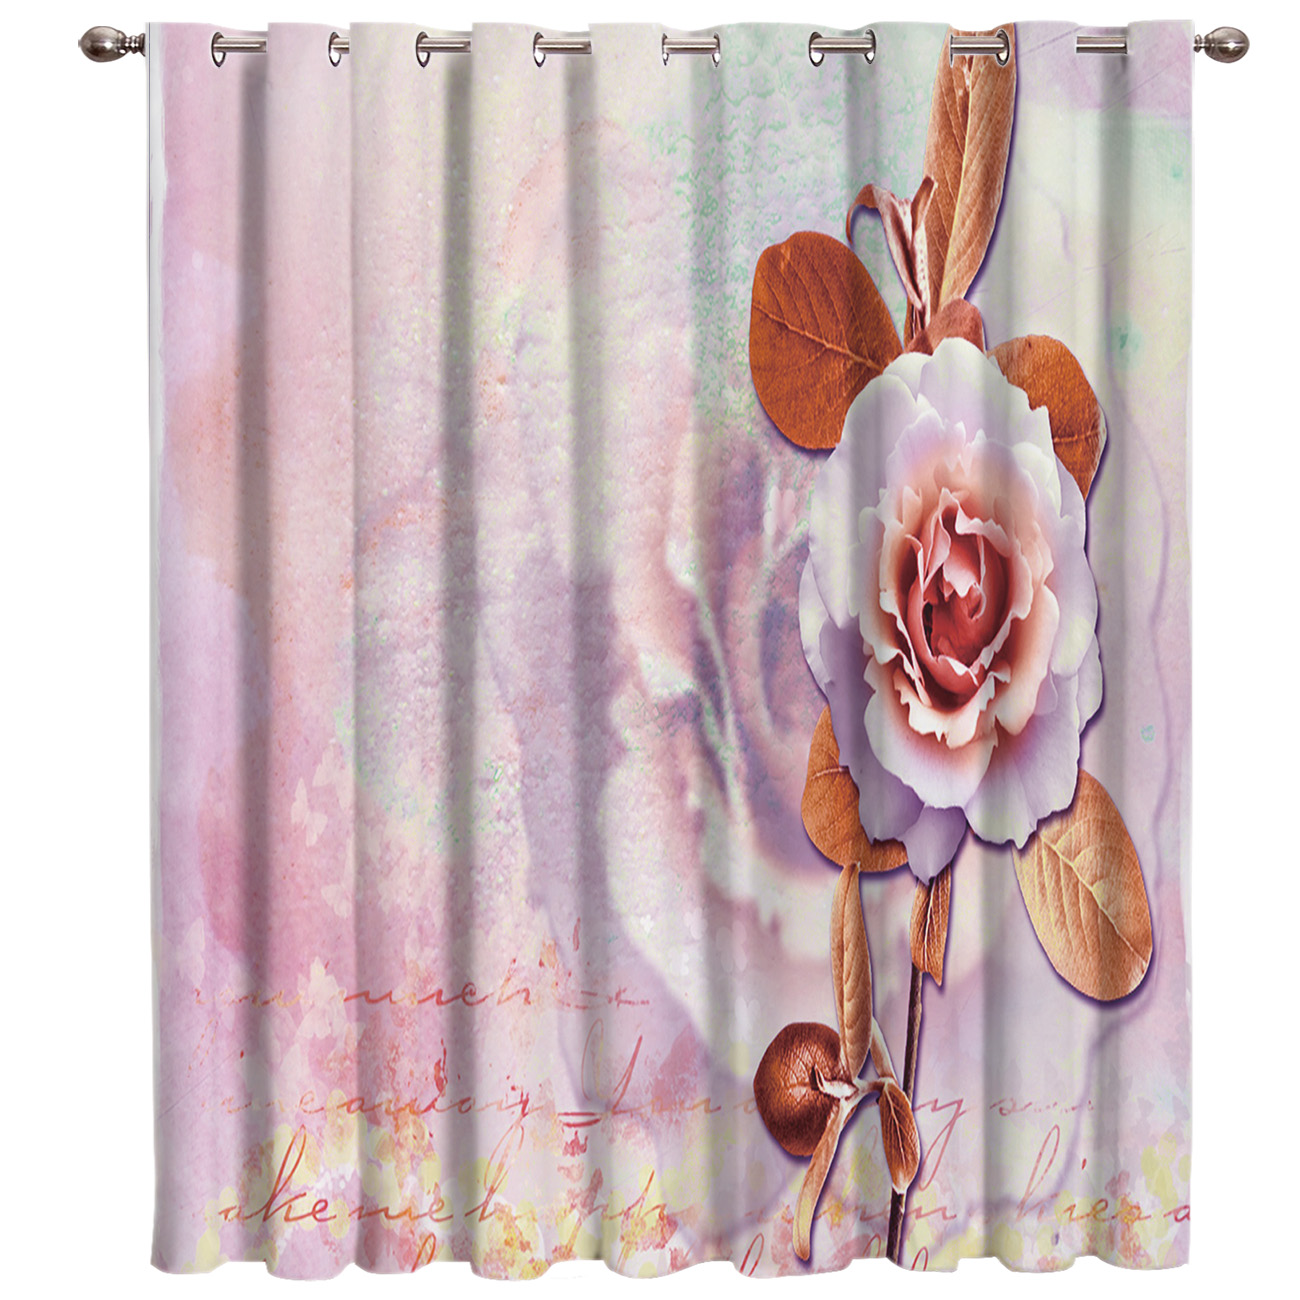 Vintage Chinese Rose Valentine's Day Flower Window Treatments Curtains Valance Bedroom Outdoor Decor Swag Window Treatment Sets